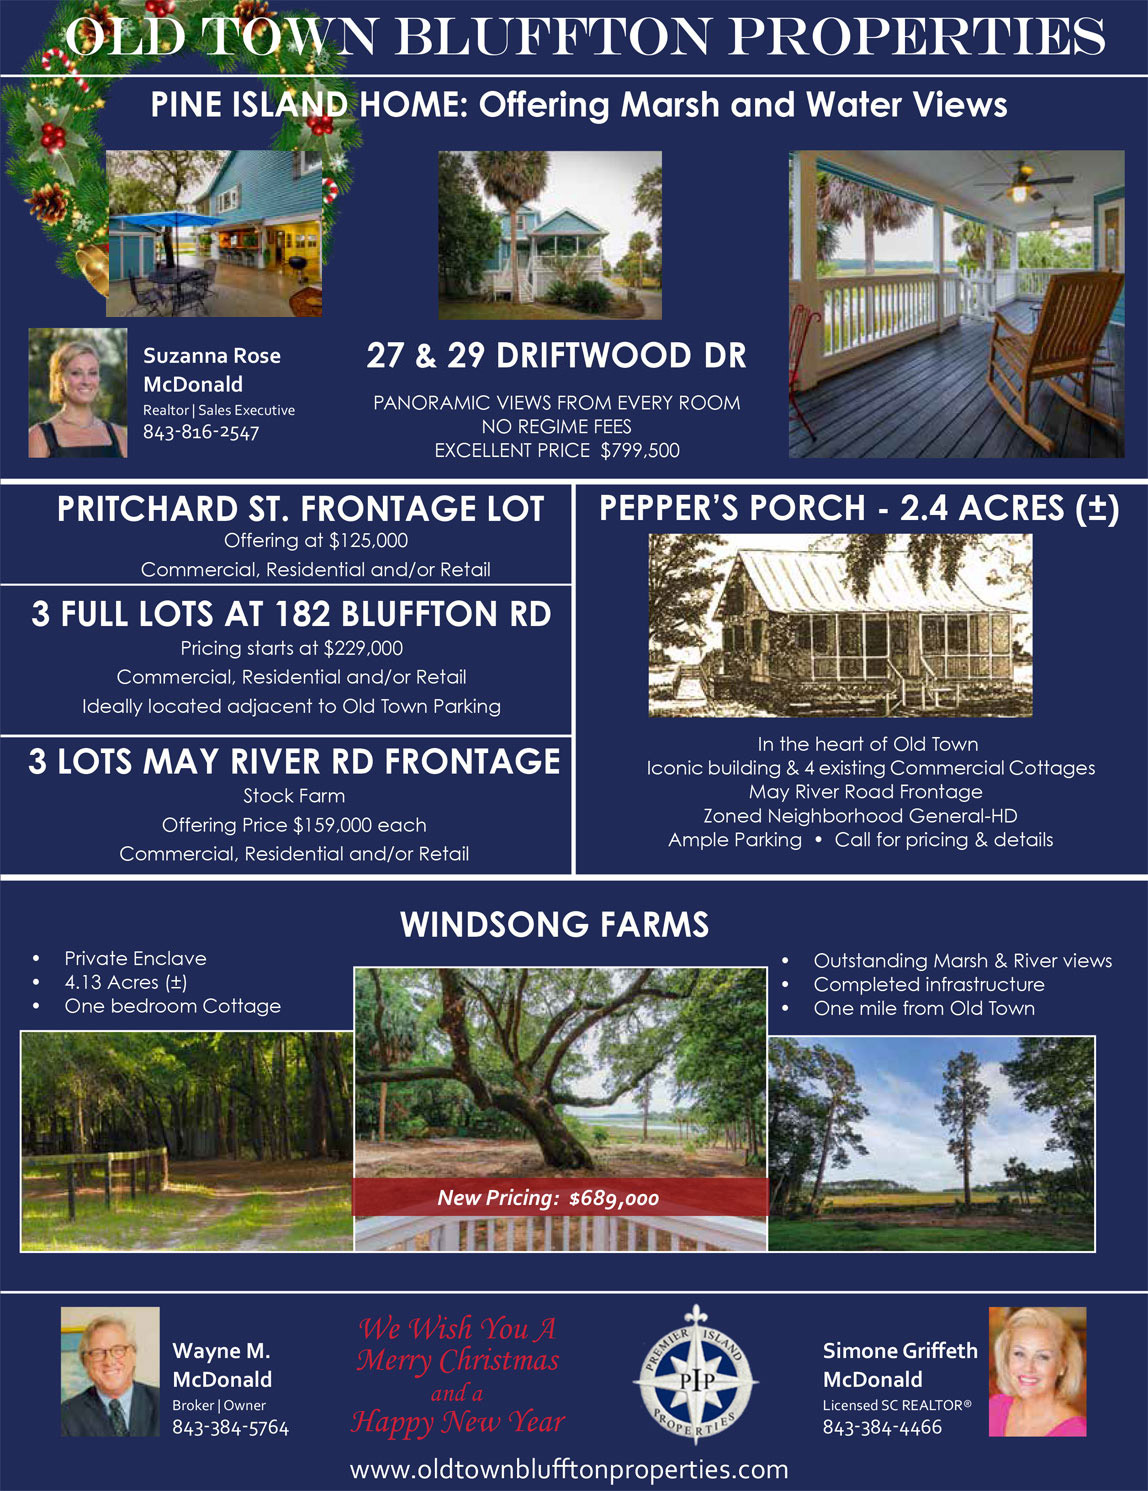 Stupendous Old Town Bluffton Properties Real Estate Property For Sale Download Free Architecture Designs Sospemadebymaigaardcom